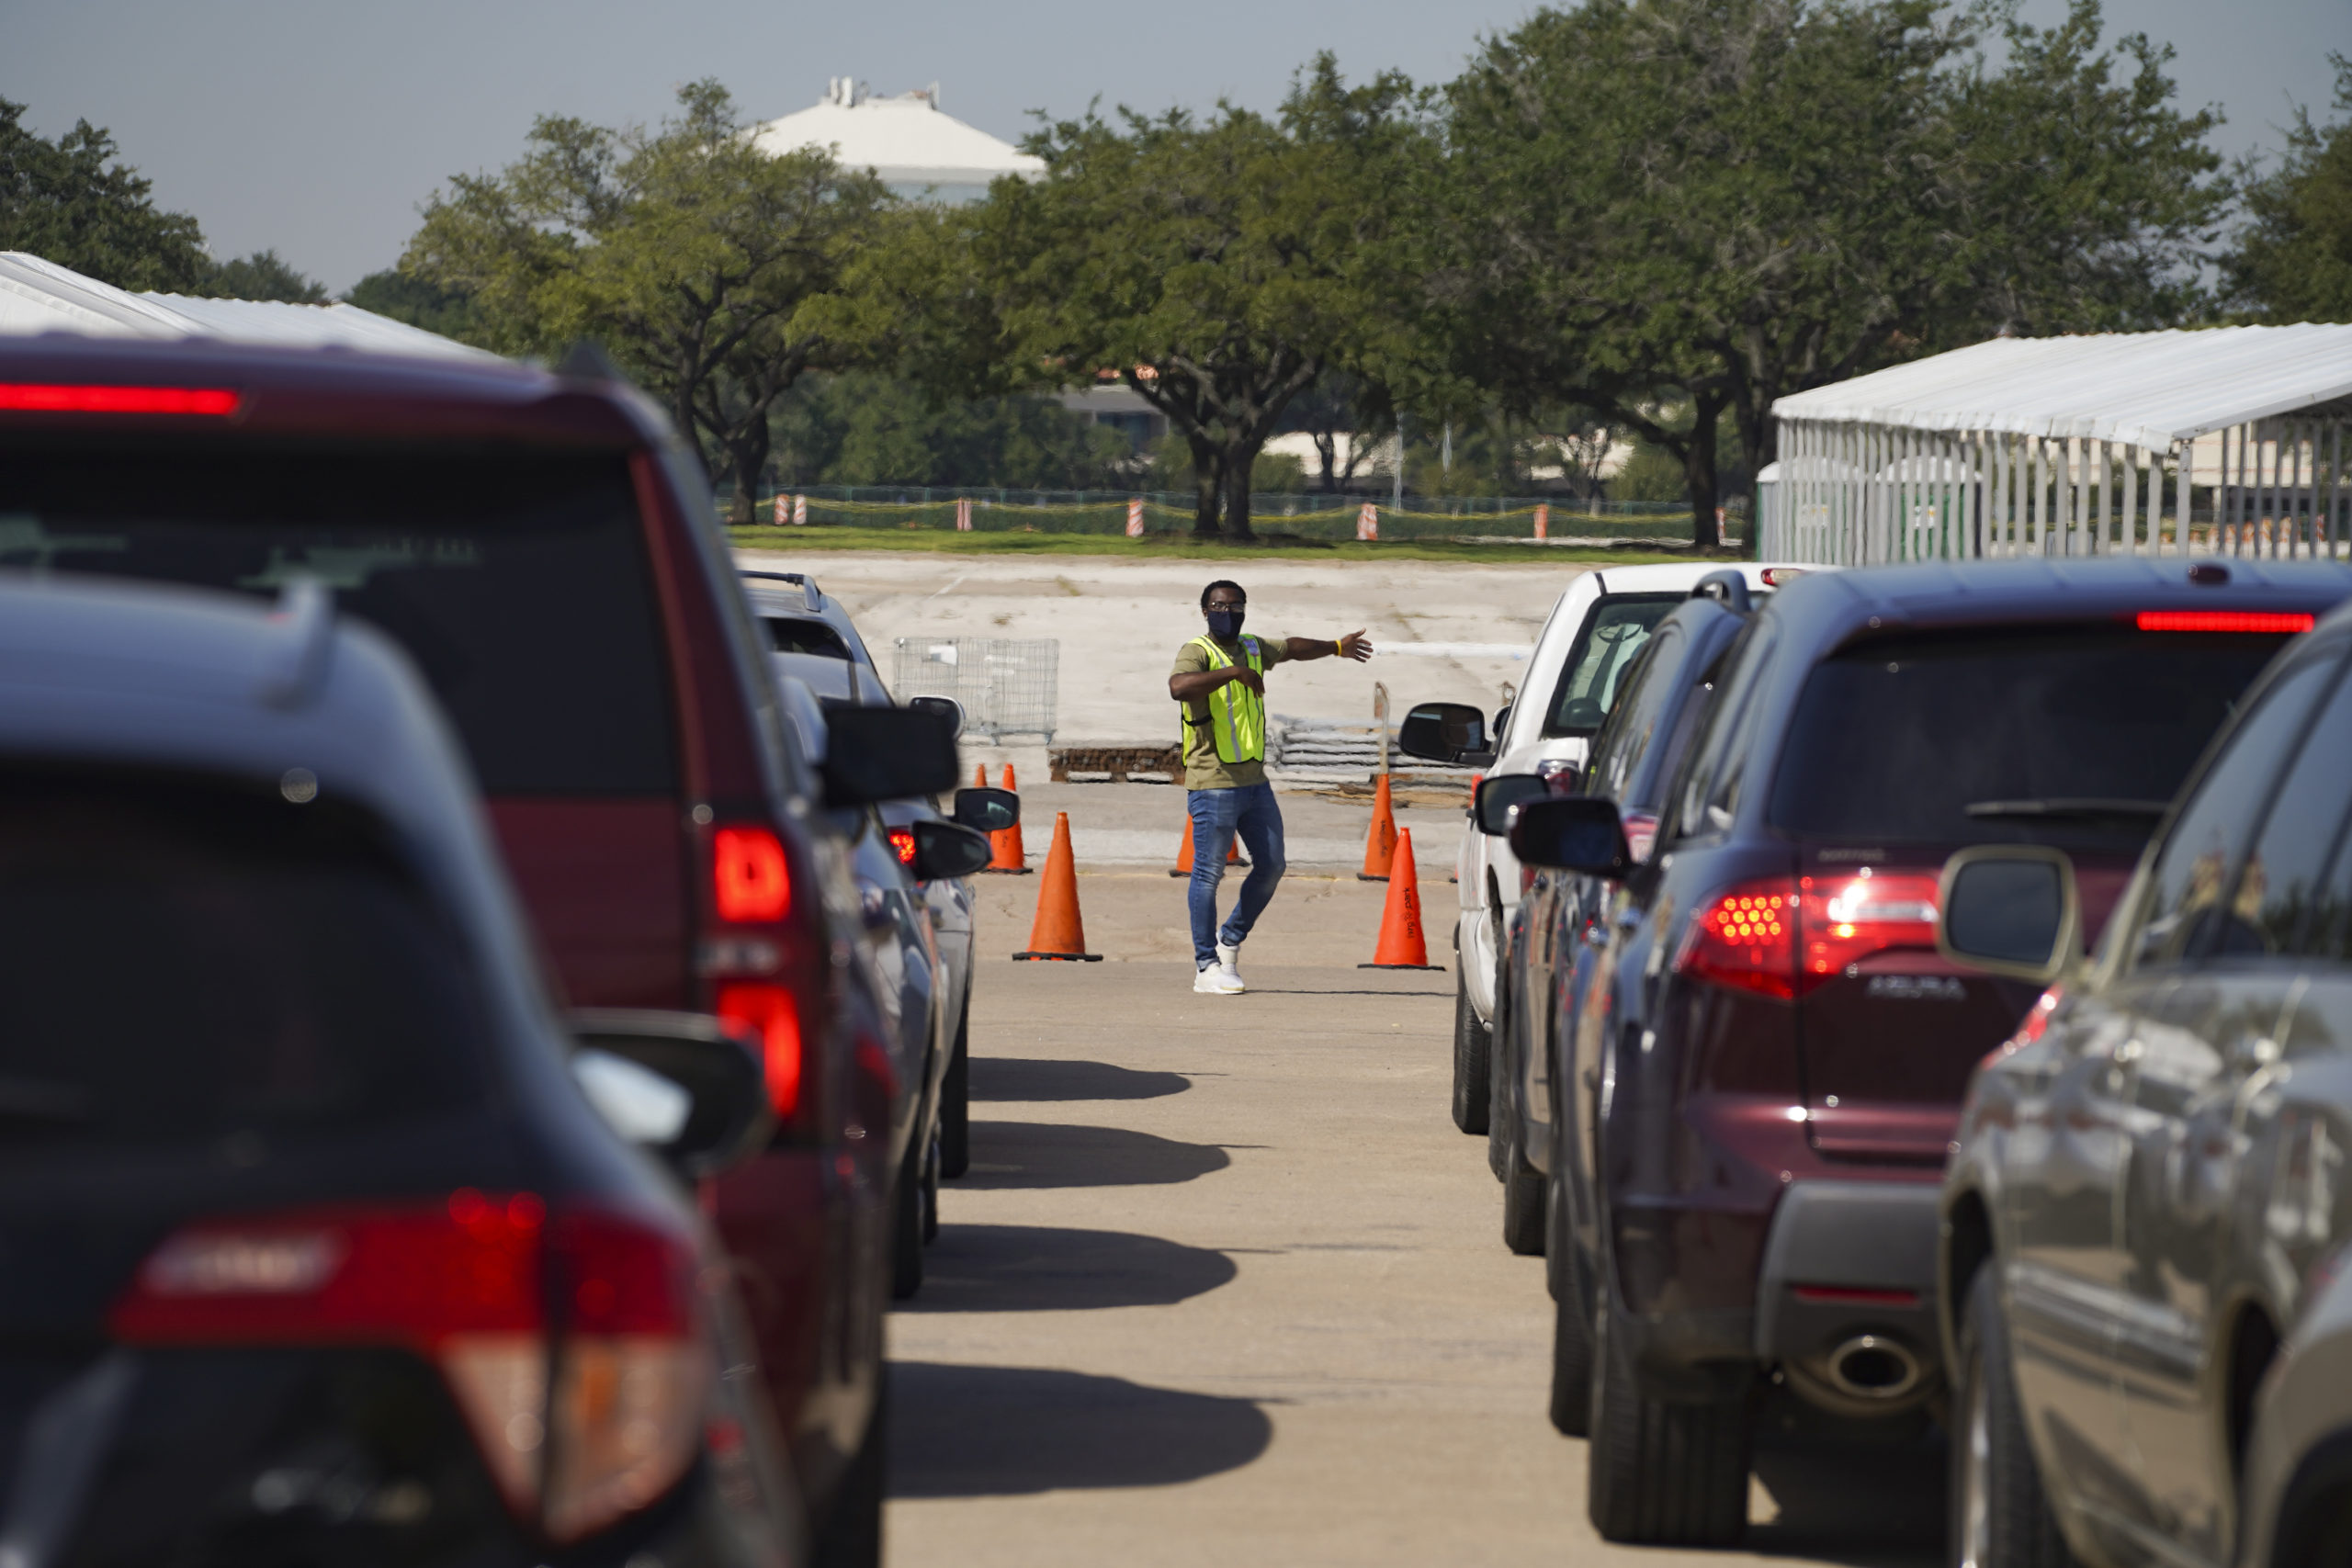 HOUSTON, TX - OCTOBER 07: An election worker guides voters in cars at a drive-through mail ballot drop-off site at NRG Stadium on October 7, 2020 in Houston, Texas. Gov. Gregg Abbott issued an executive order limiting each county to one mail ballot drop-off site due to the pandemic. (Photo by Go Nakamura/Getty Images)